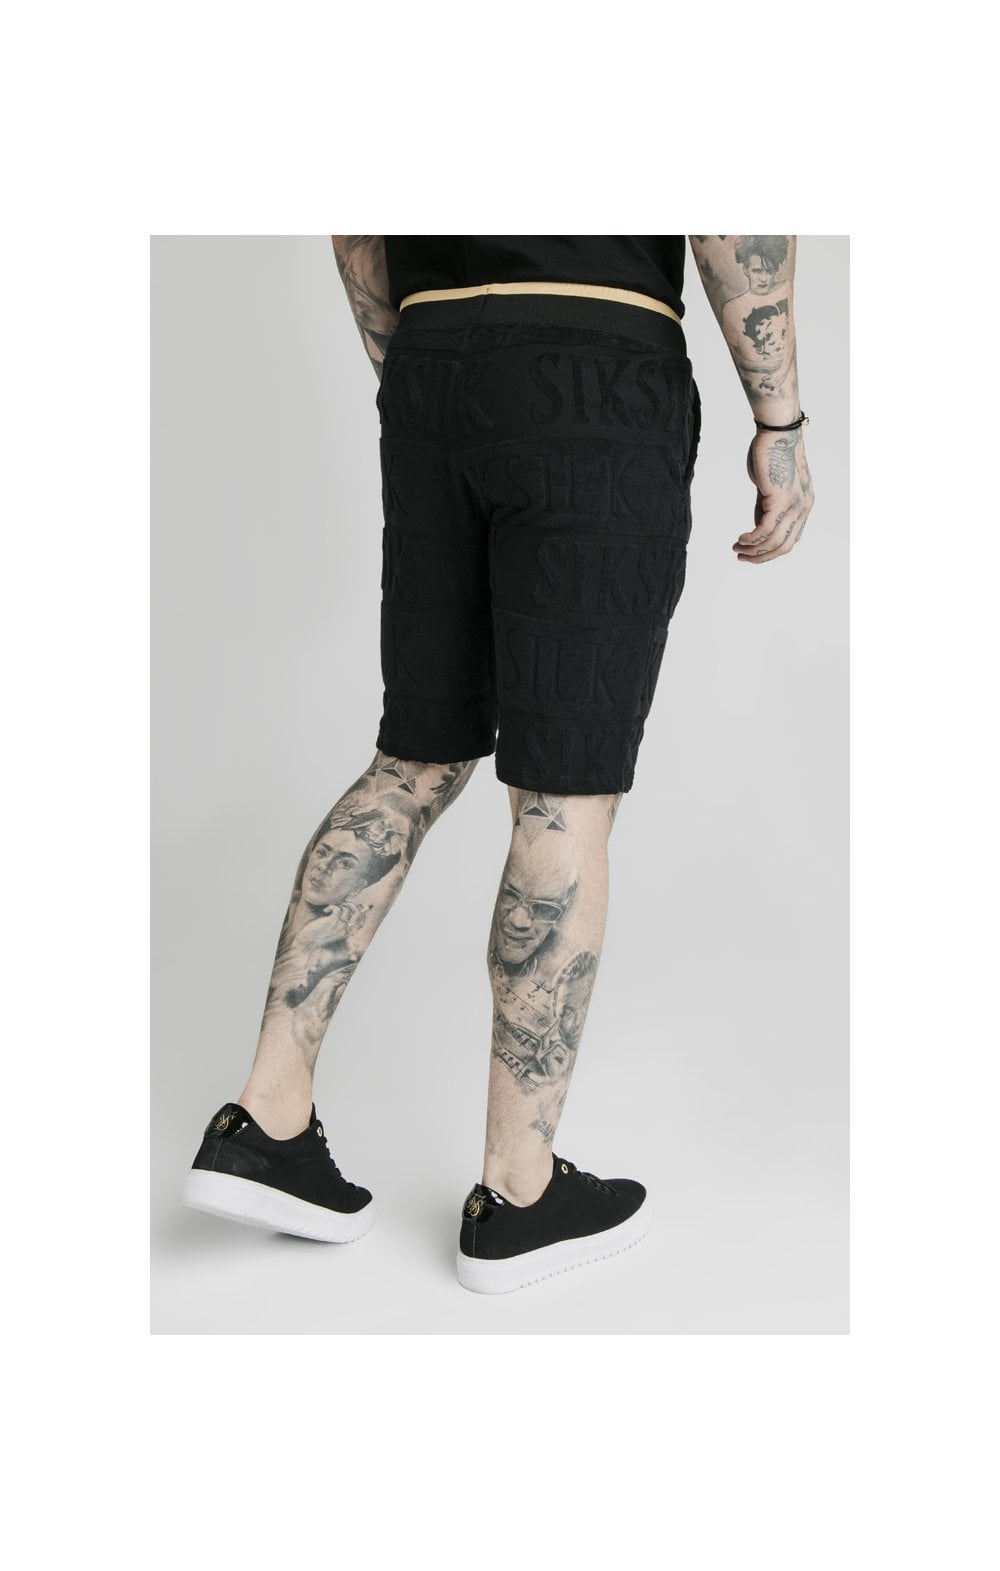 SikSilk Inverse Gym Shorts - Black (3)